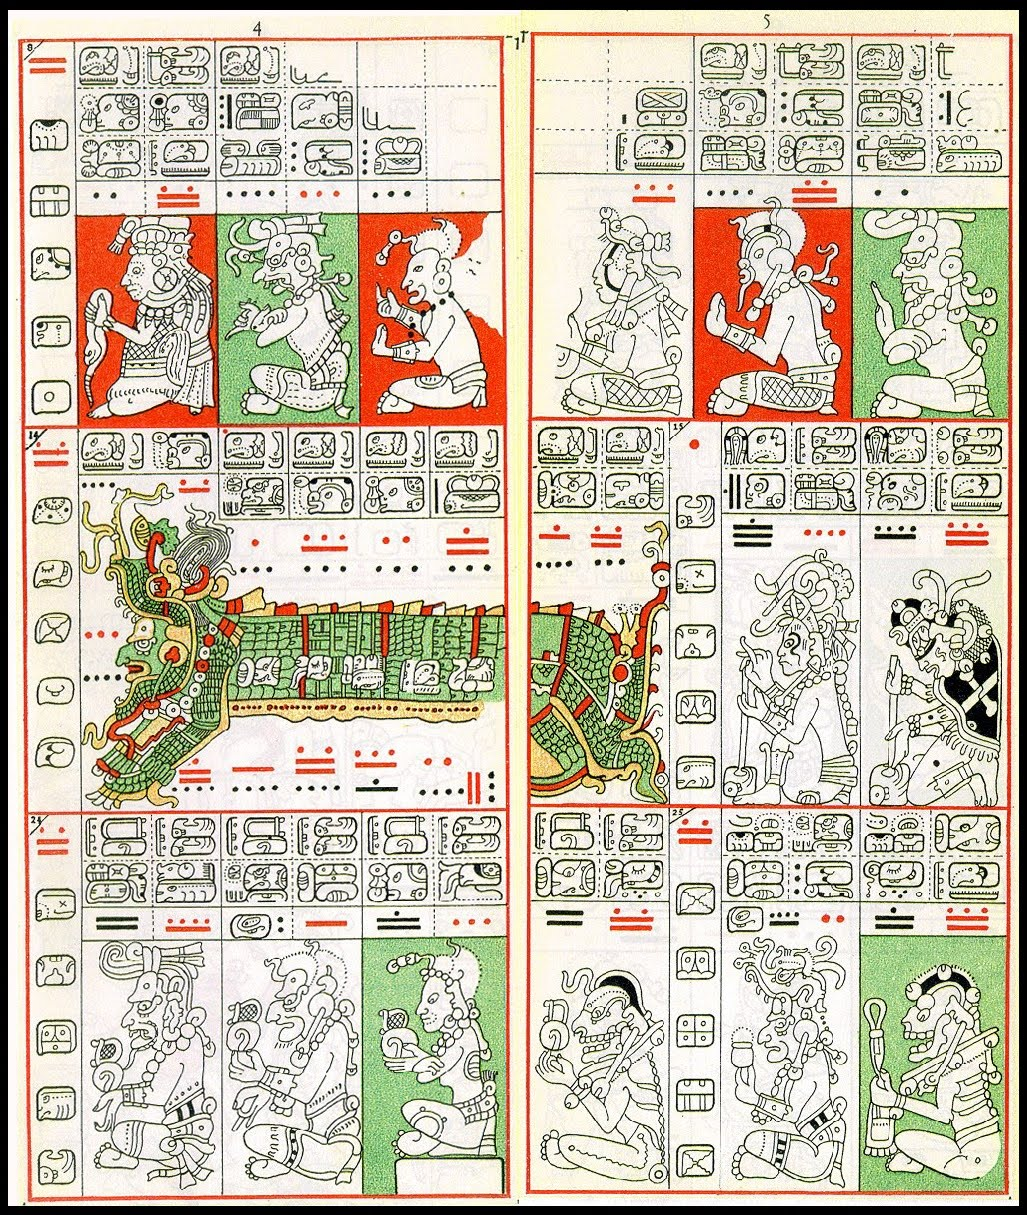 1932 reproduction of Mayan codex